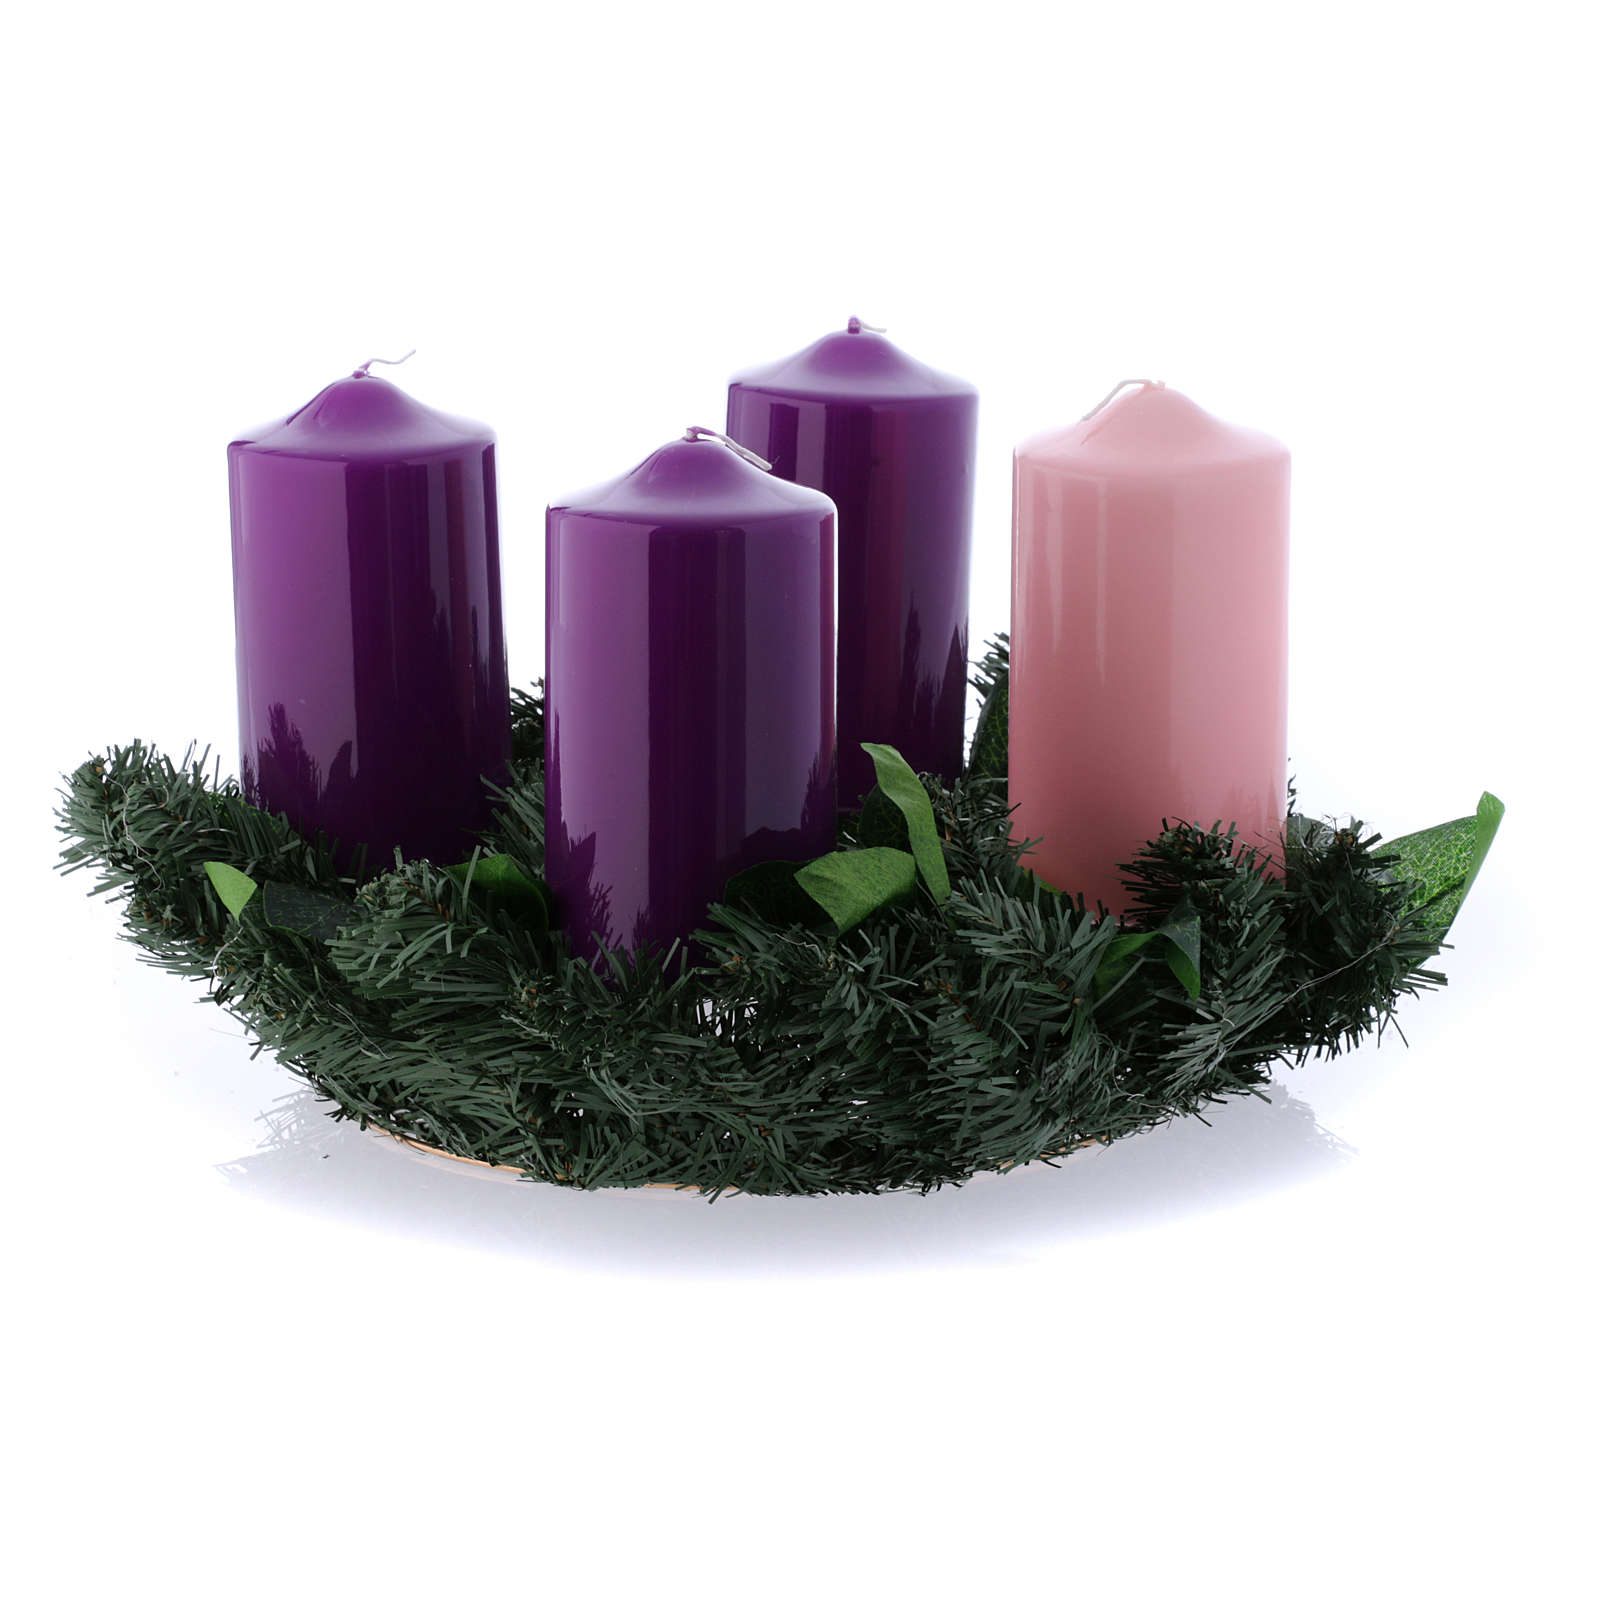 Liturgical Advent kit: wreath and shiny candles 8x15 cm 3